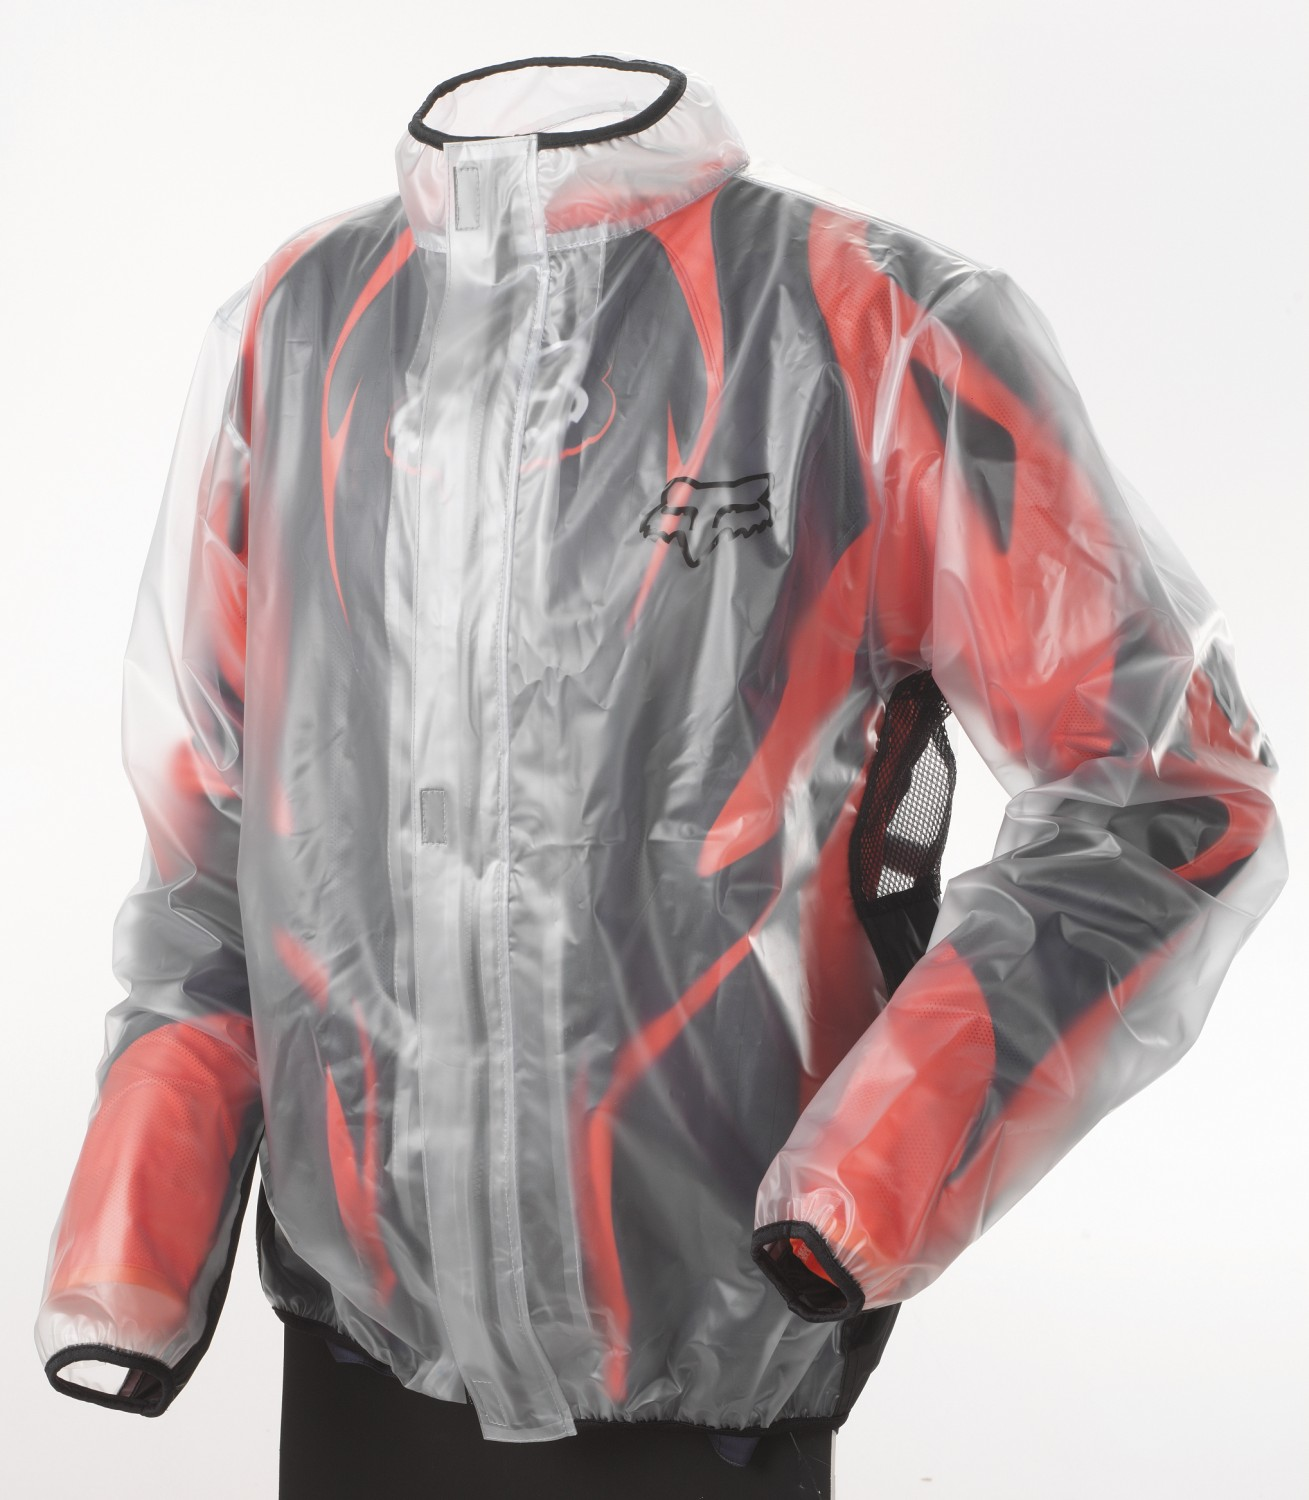 10033-012 fox racing mx fluid rain jacket black regenjas regenjacke veste de pluie